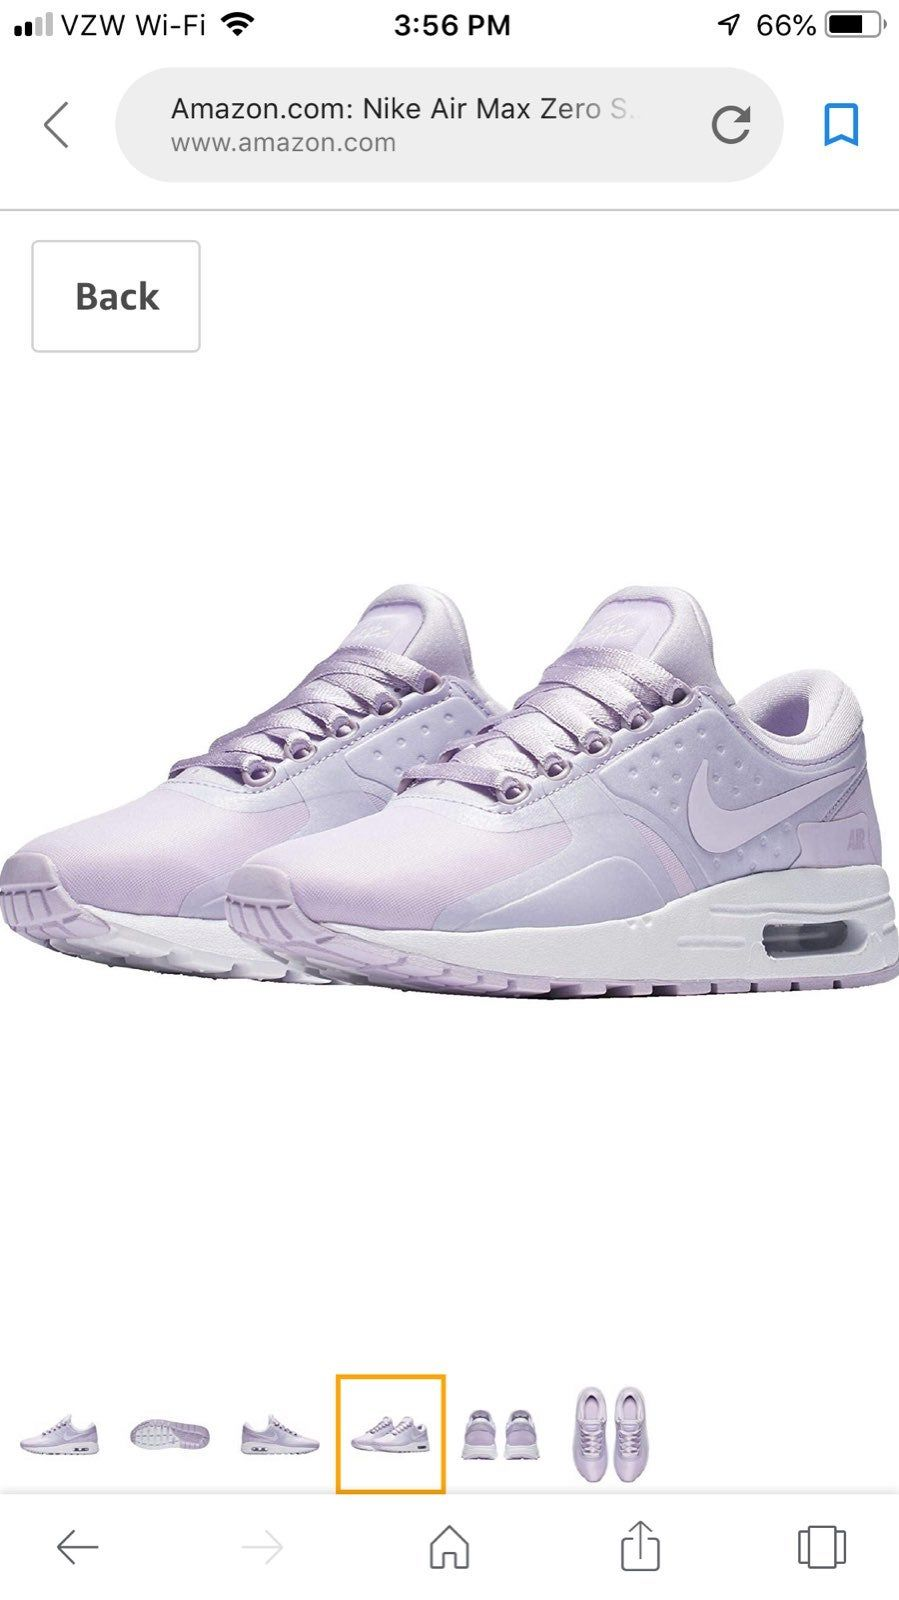 Nike Air Max Zero In Color Of Purple Violet Youth Size 4y Nike Sku 917863 500 4 Lightly Used By Daughter Grew Or If Them In About Nike Air Max Air Max Nike